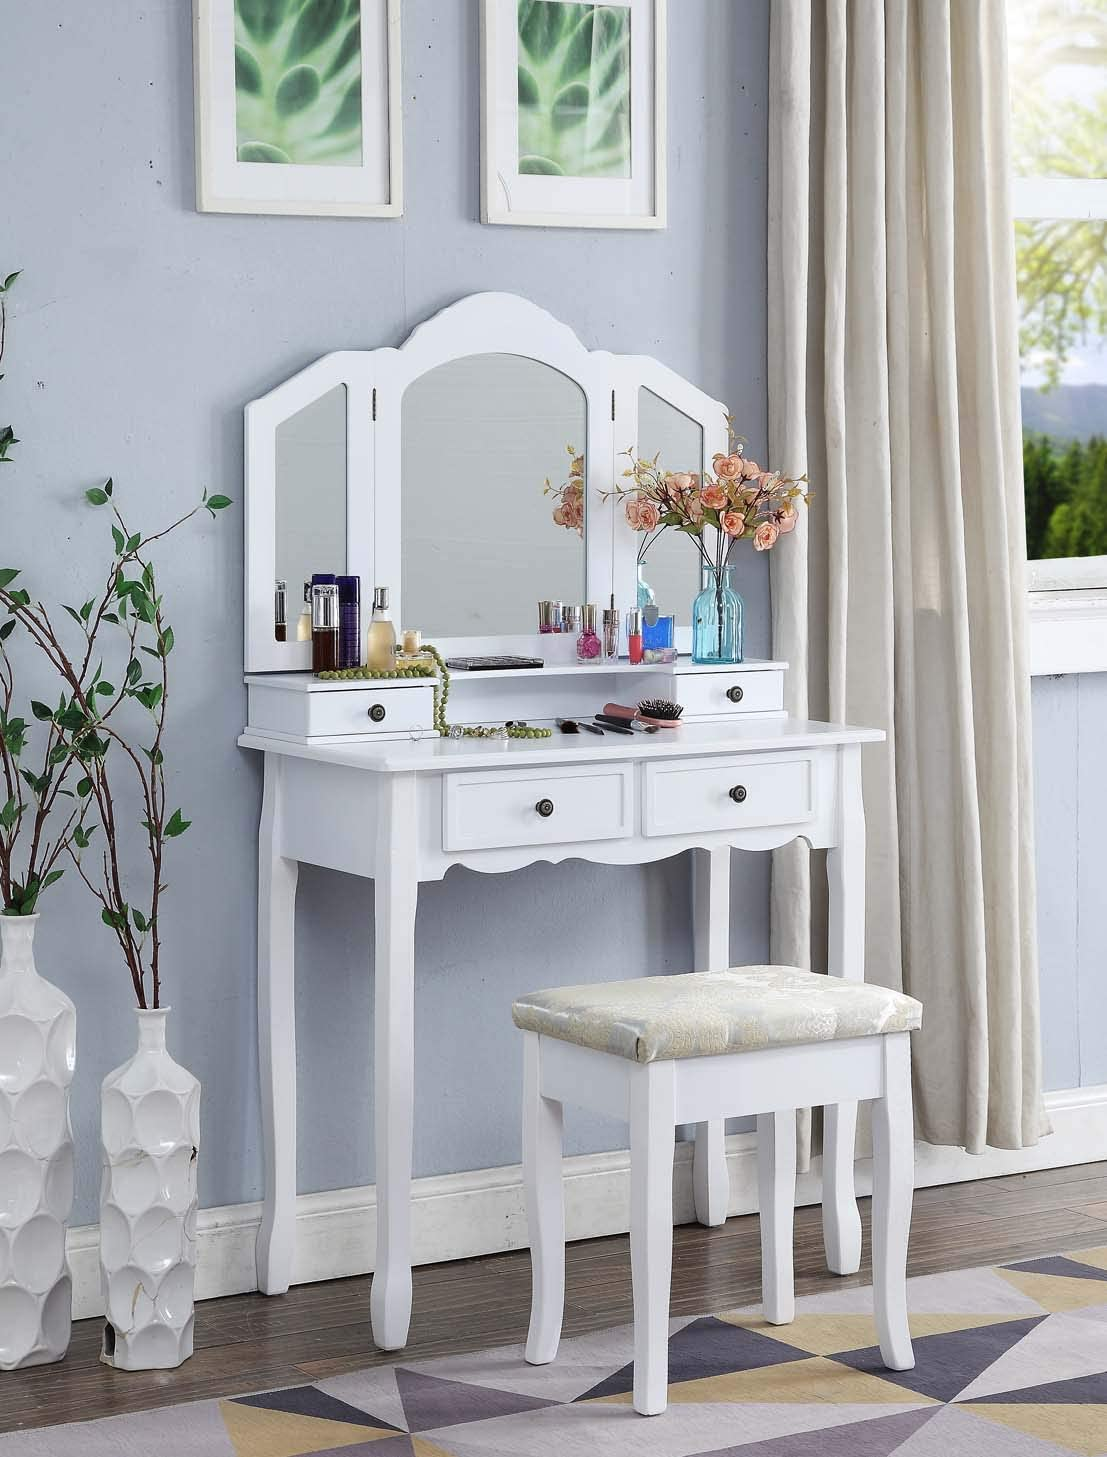 Roundhill Furniture Sanlo Wooden Vanity Up Sales Max 66% OFF Make Stoo and Table